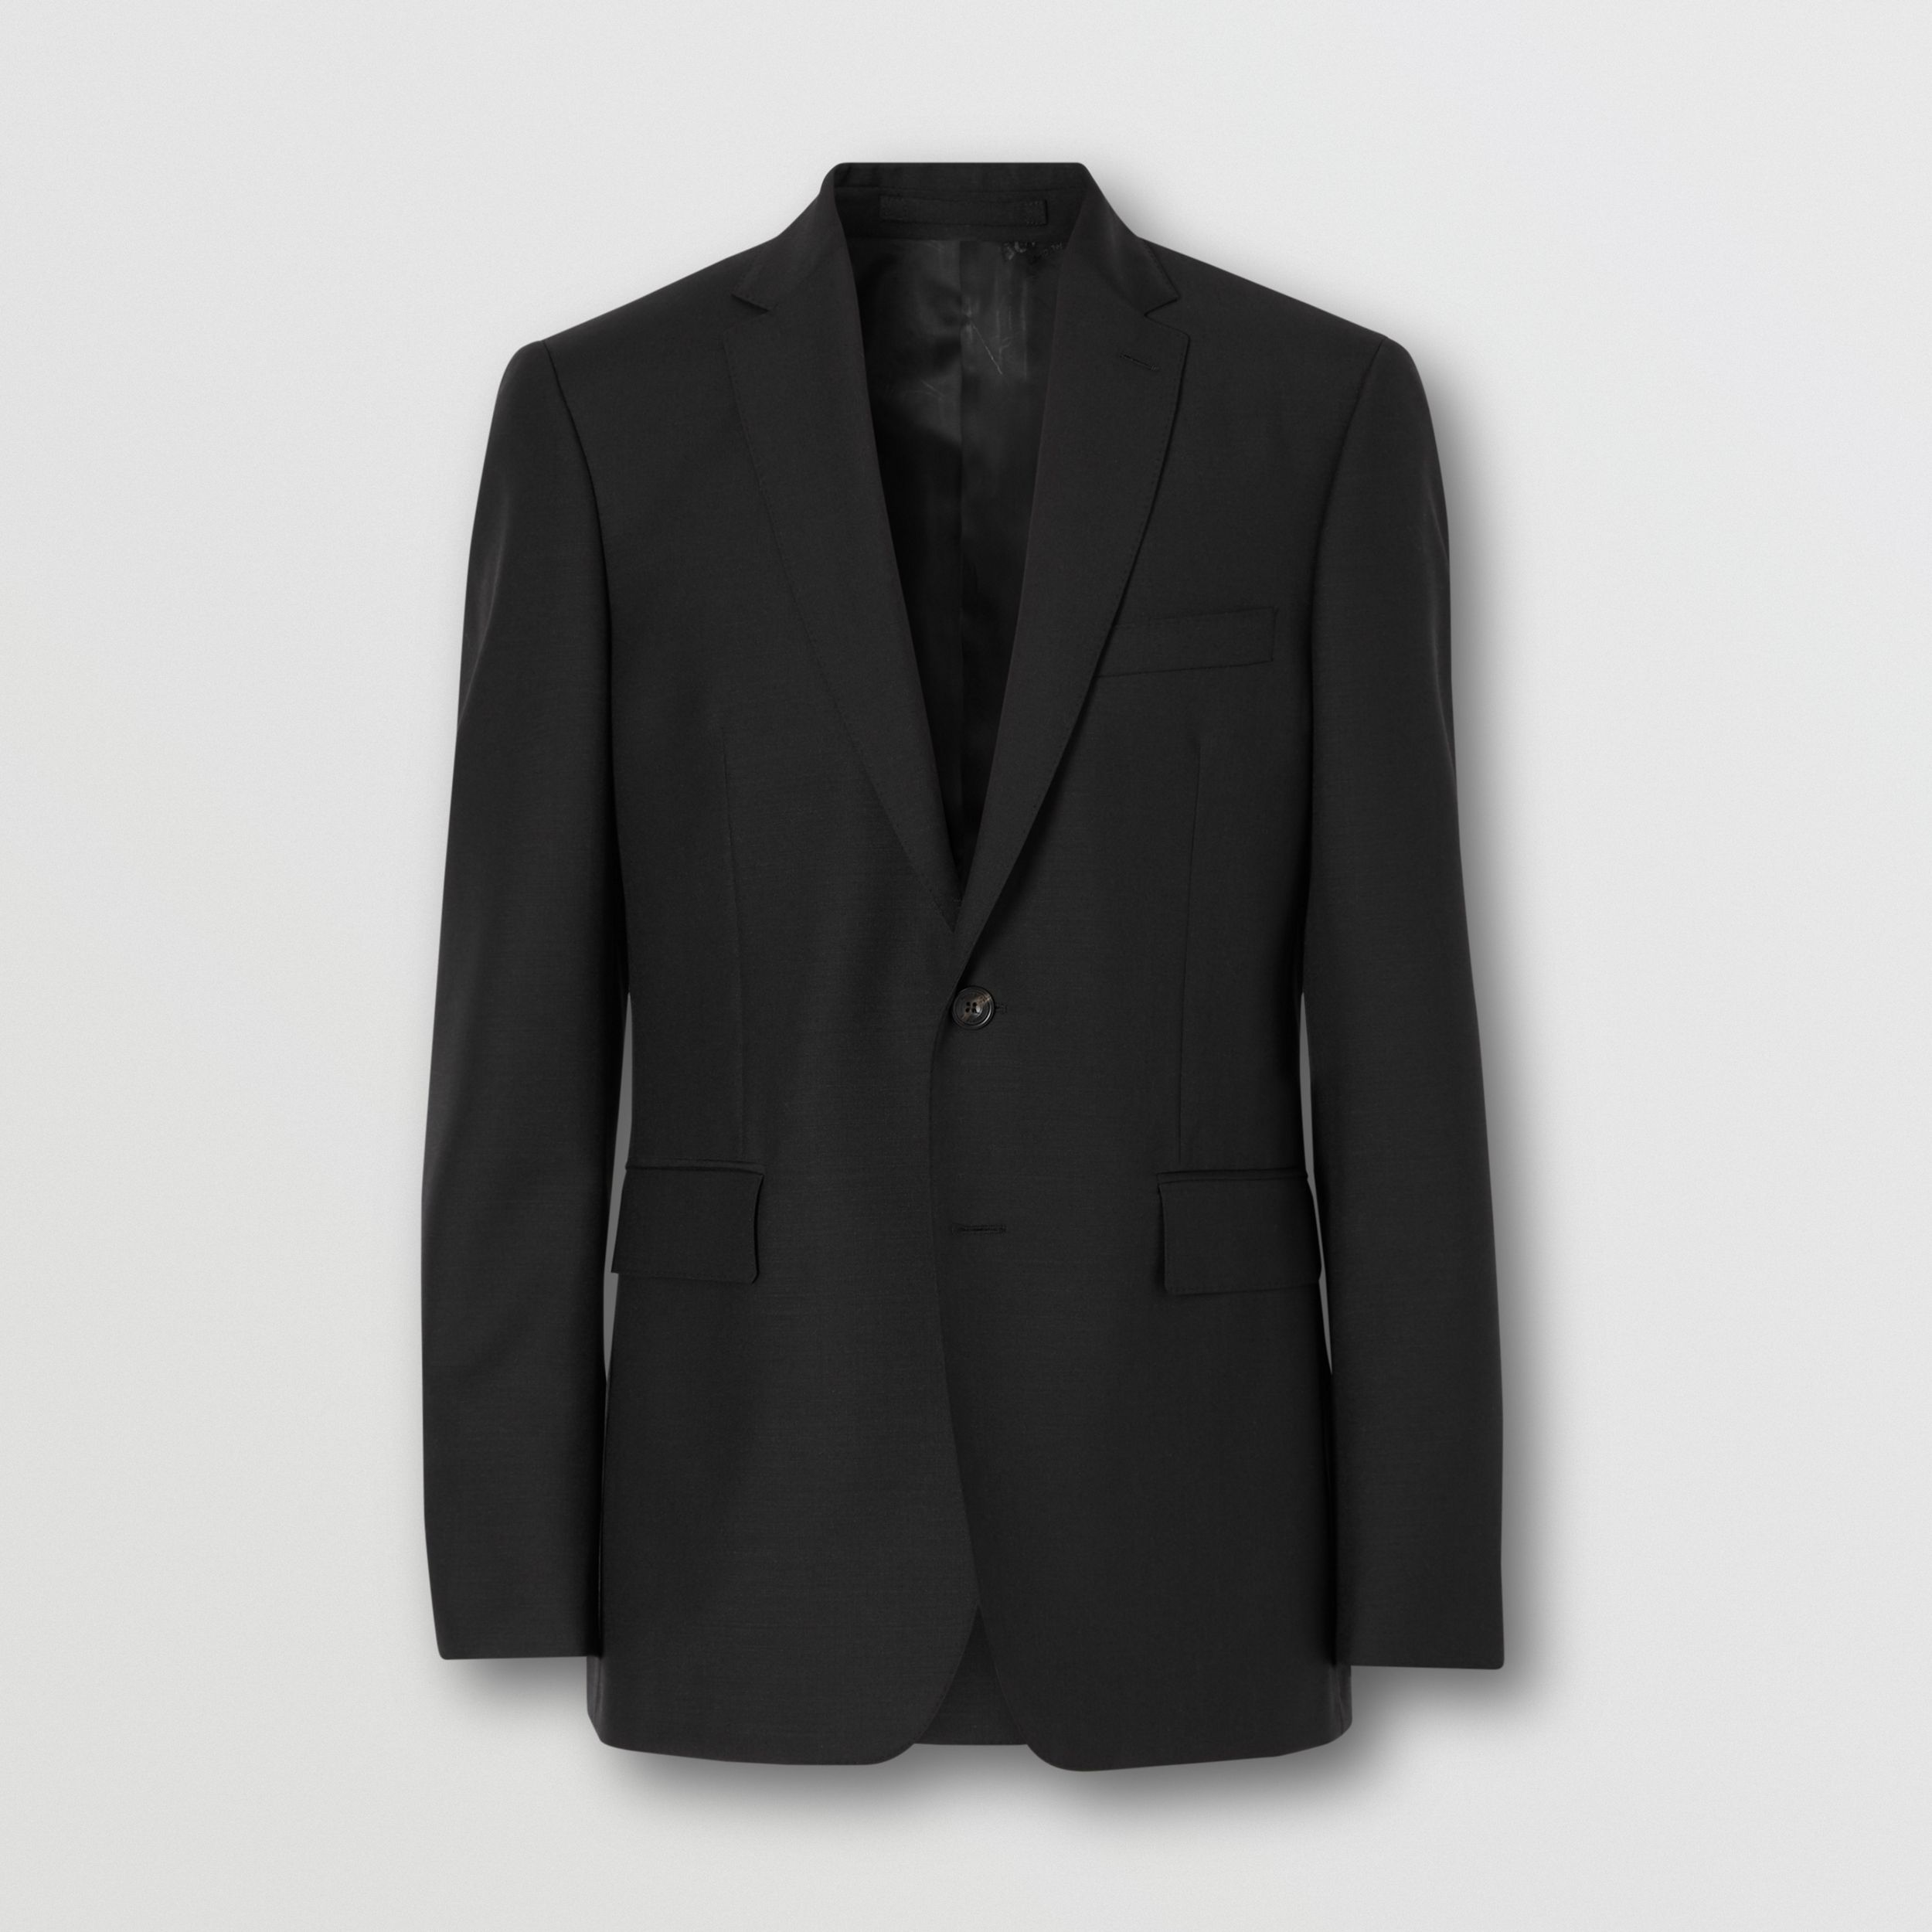 Slim Fit Wool Mohair Suit in Black - Men | Burberry - 4